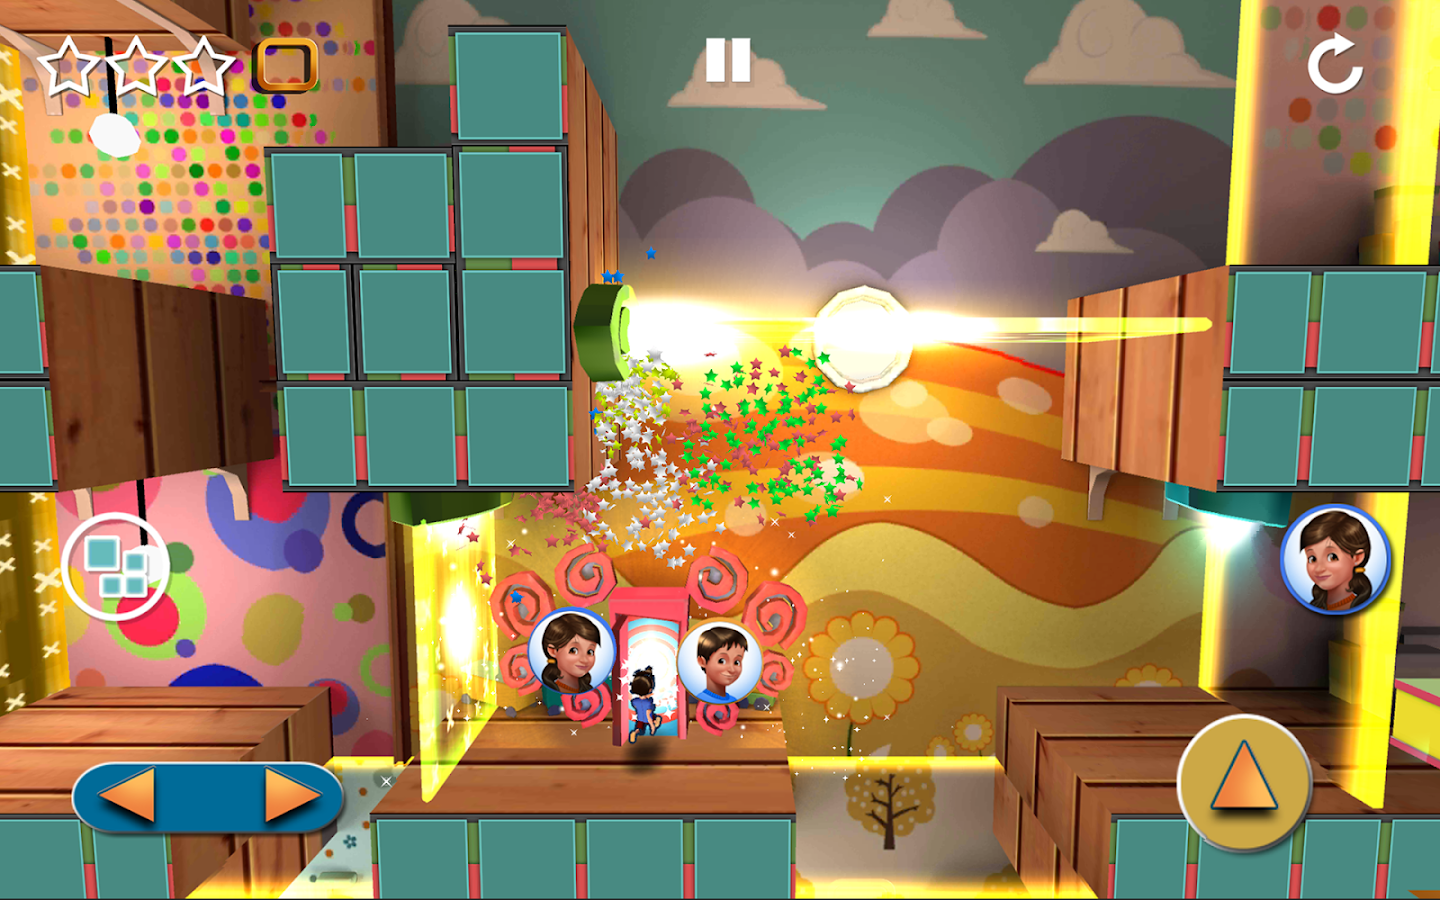 Lost Twins - A Surreal Puzzler Screenshot 19